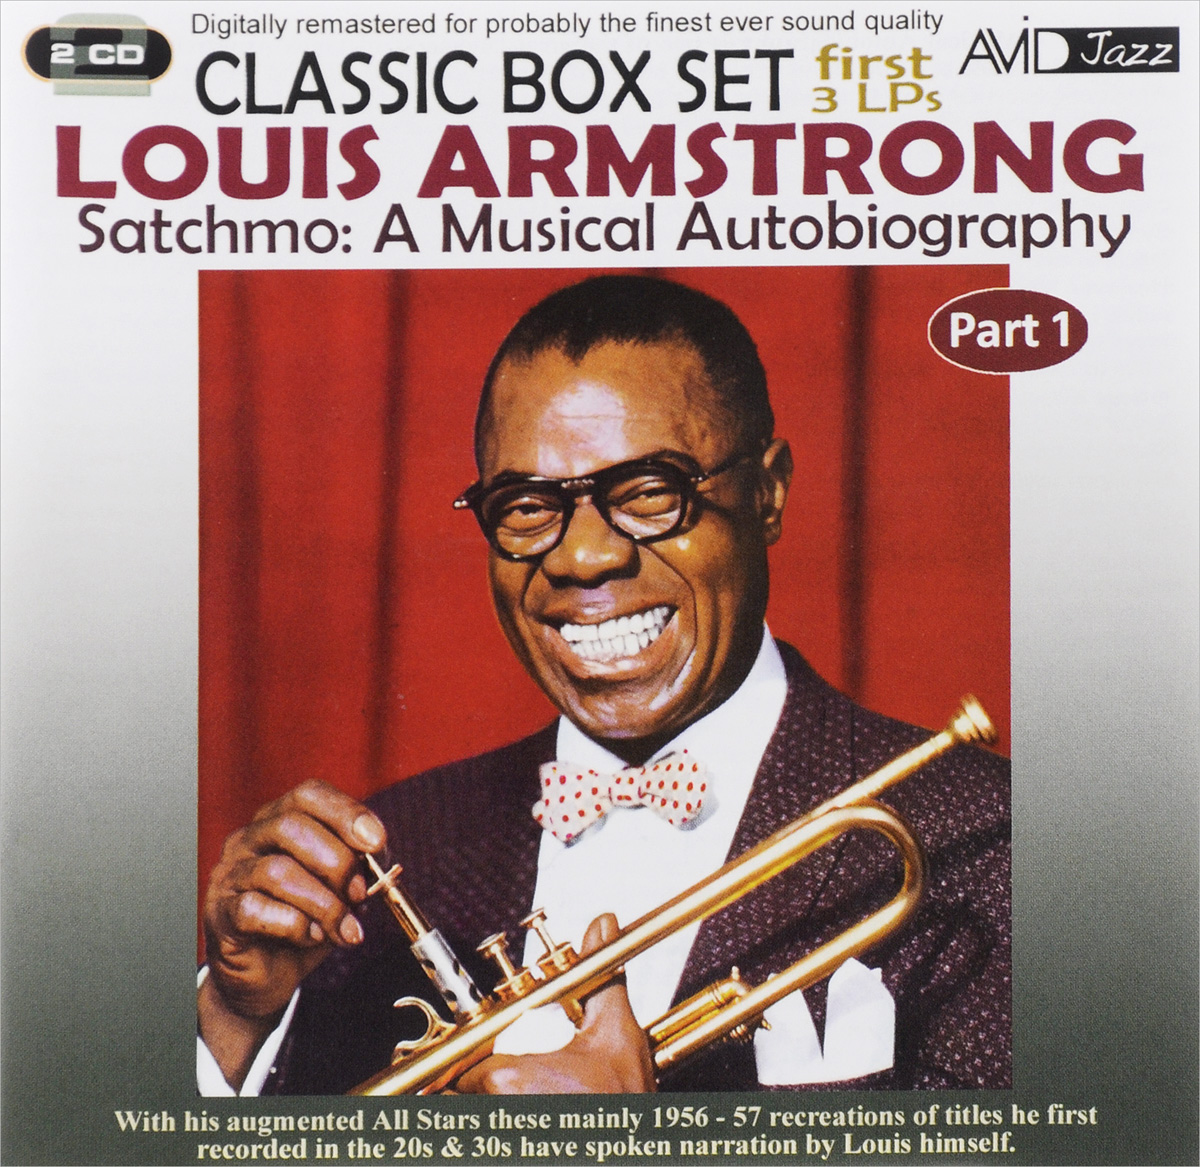 Луи Армстронг,Louis Armstrong & The All Stars Avid Jazz. Louis Armstrong. Satchmo. A Musical Autobiography. Part 1 (2 CD) недорго, оригинальная цена